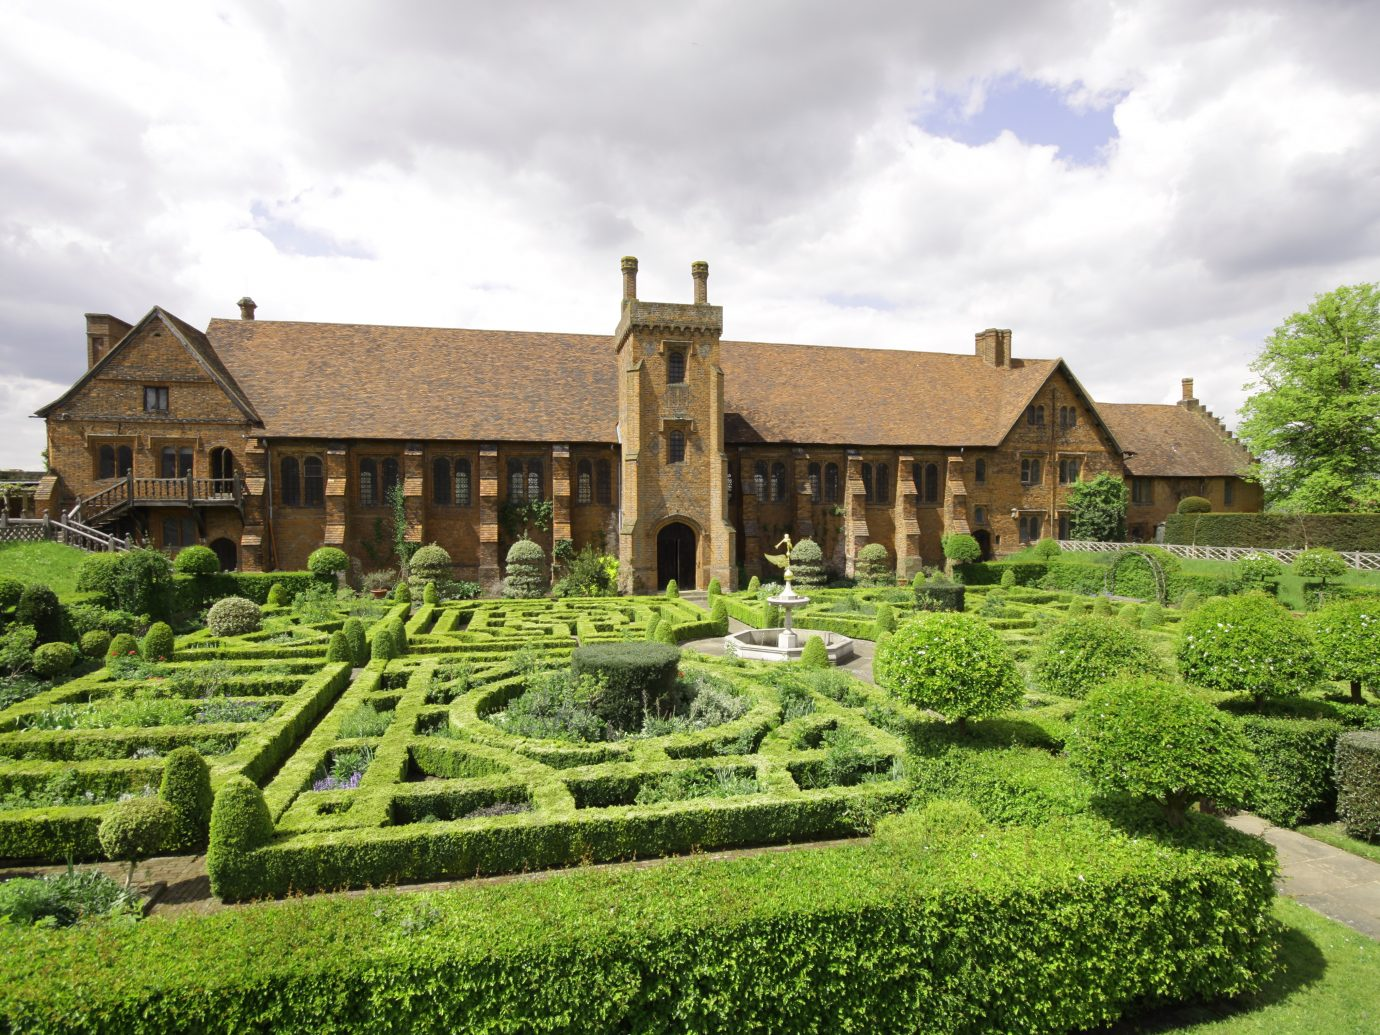 Hatfield Old Palace, Hertfordshire, UK